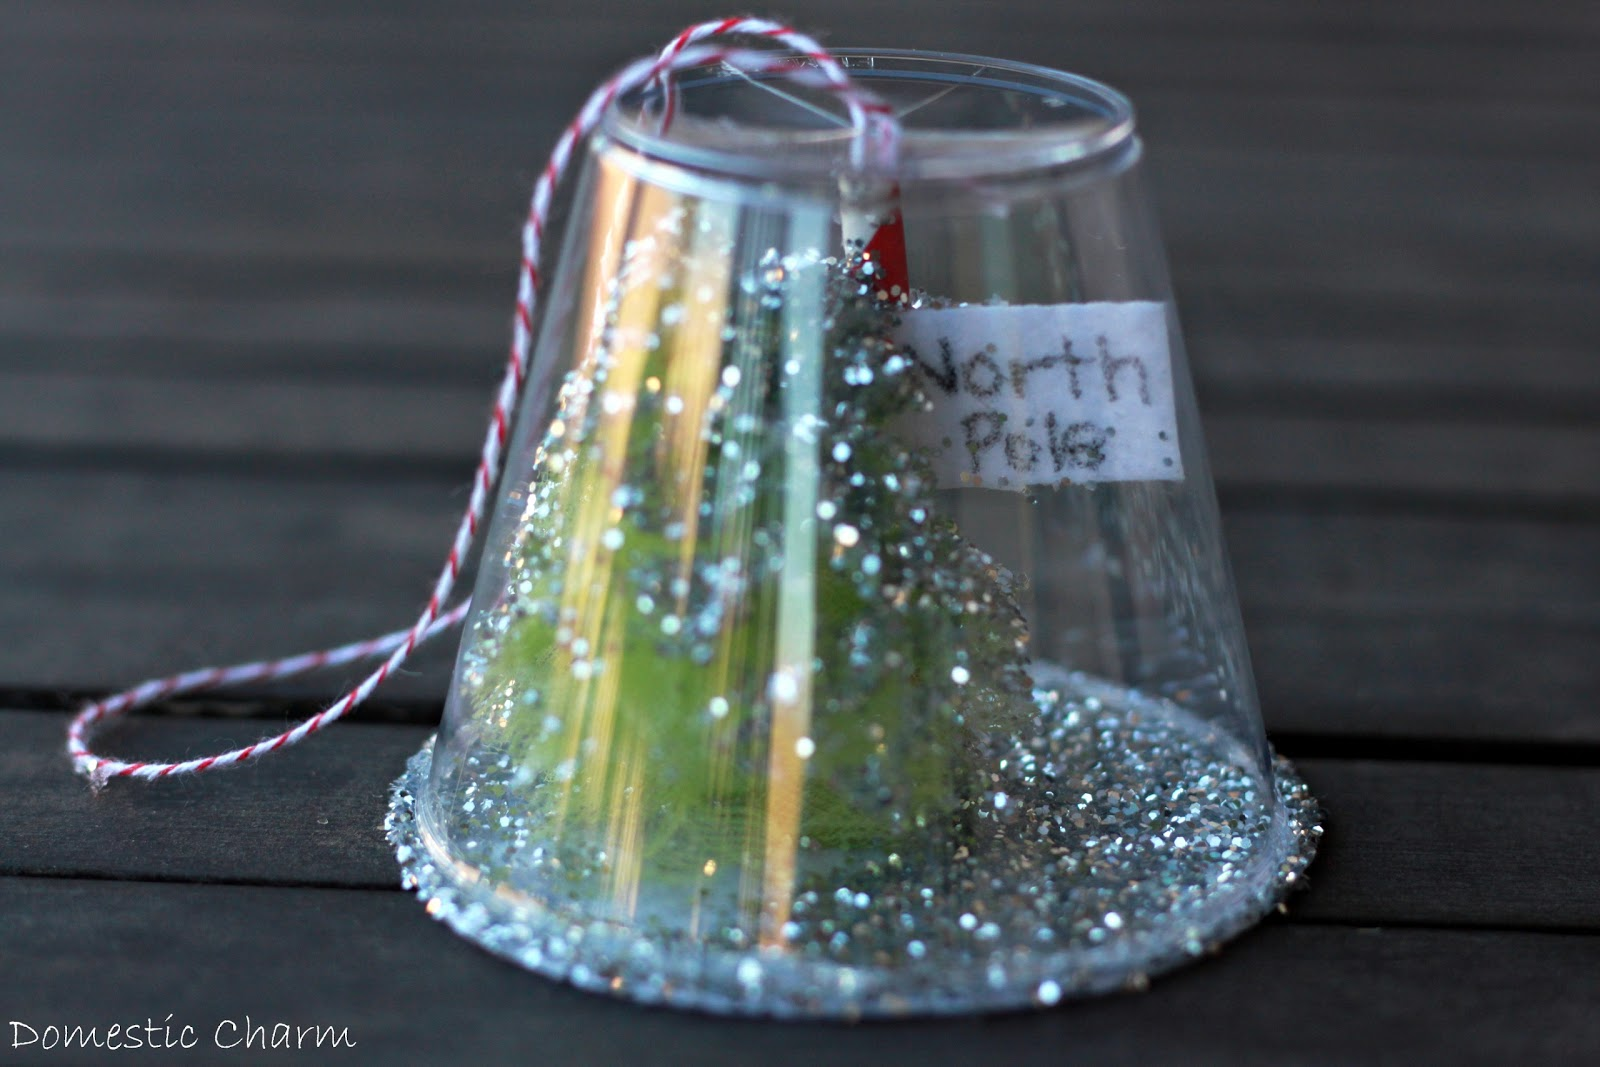 Domestic Charm: Homemade Christmas Ornament